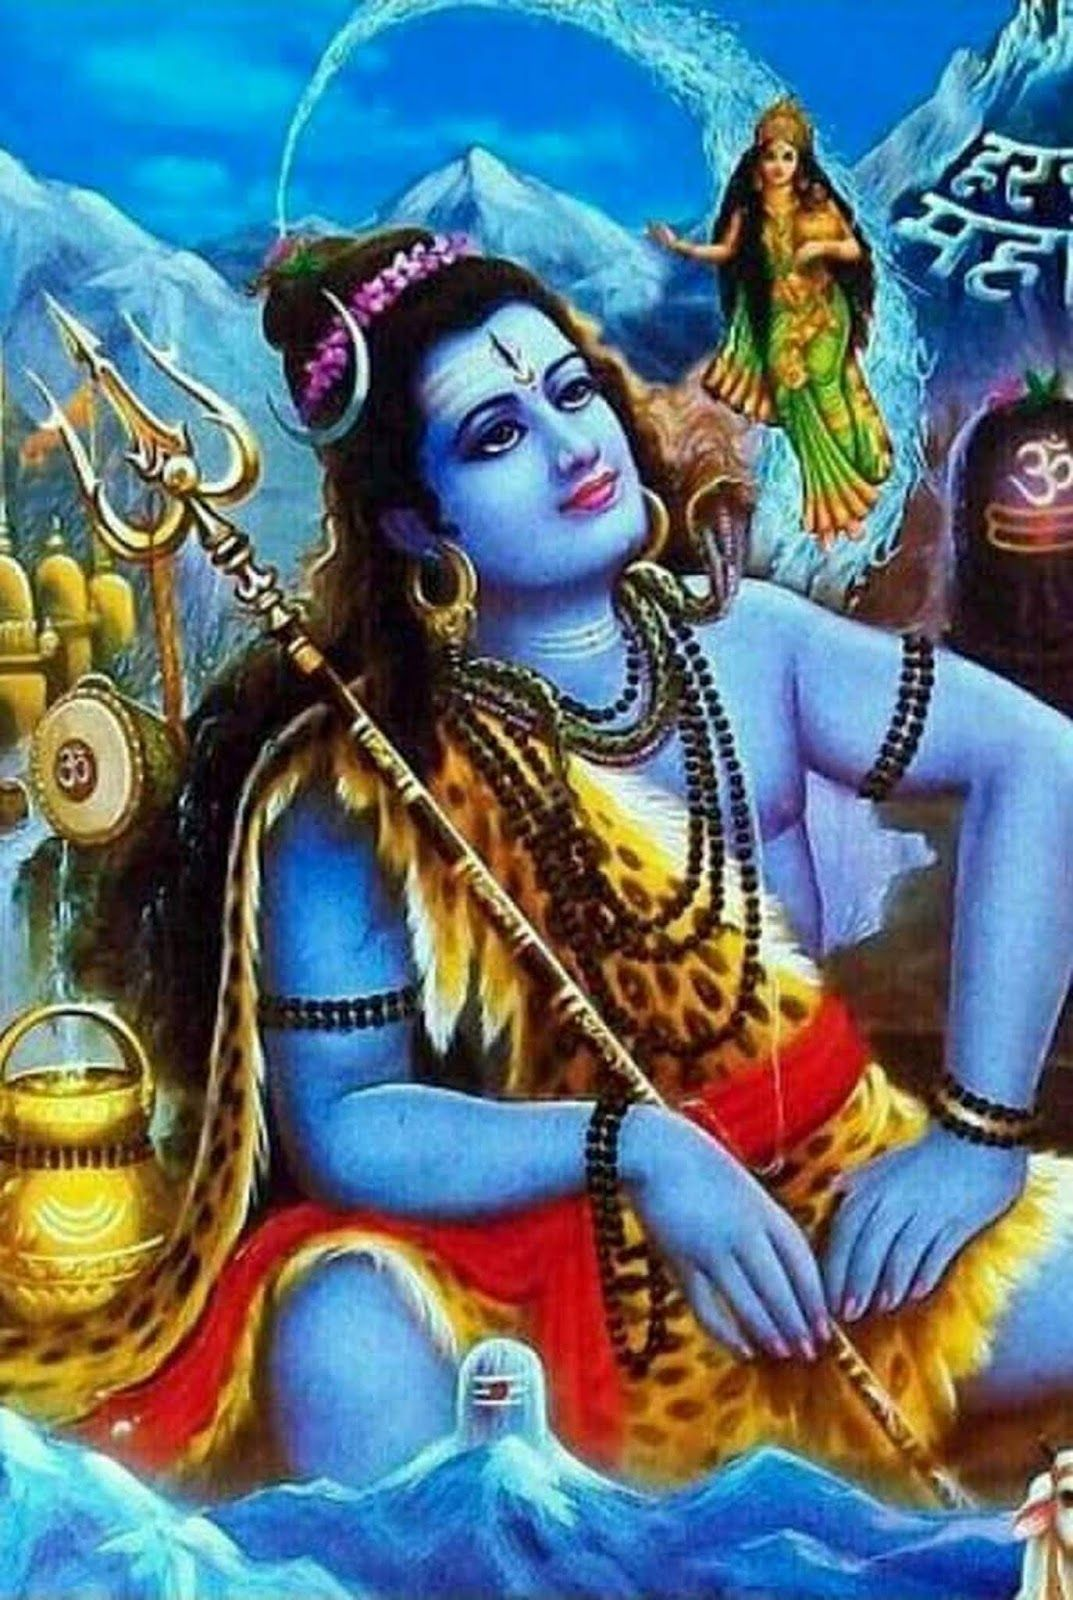 He Is The Supreme Being Within Shaivism One Of The Major Traditions Within Contemporary Hinduism Arud Lord Shiva Hd Wallpaper Lord Shiva Lord Shiva Painting